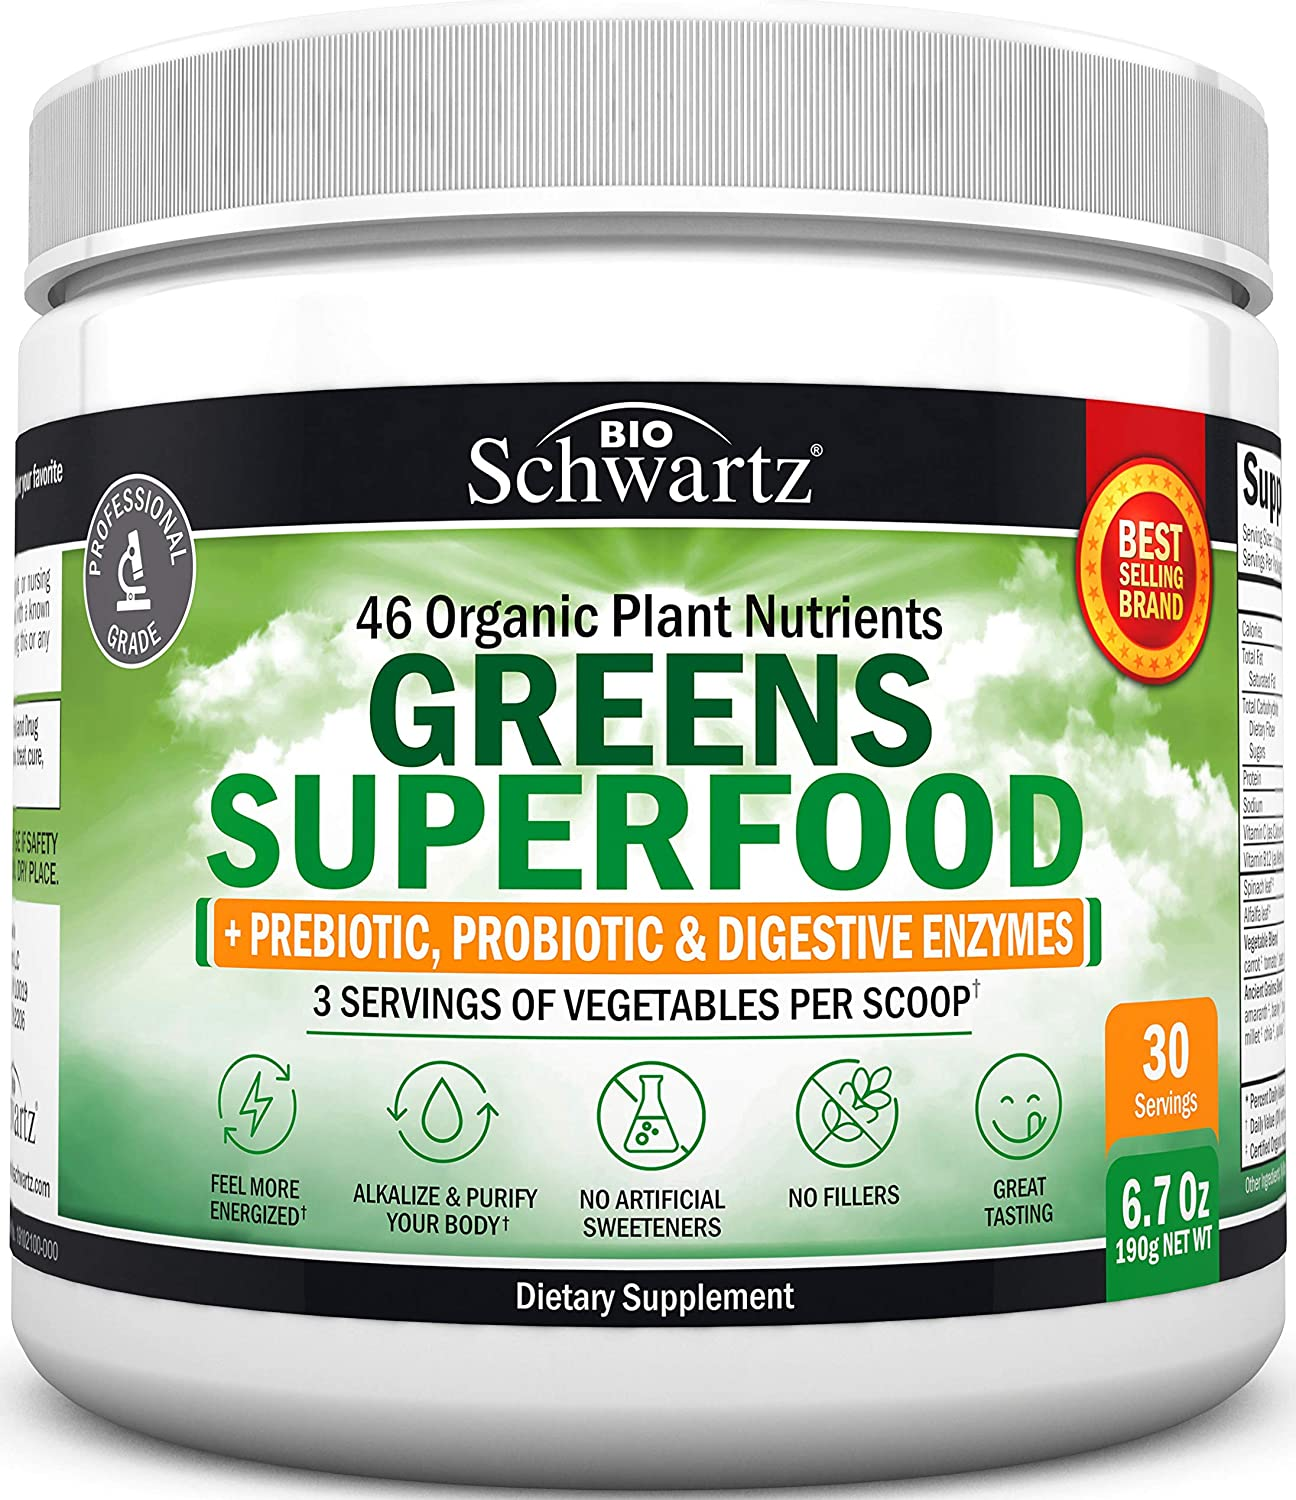 Super Greens Powder - Dr. Approved Formula with 45+ Organic Green Superfoods - Alfalfa, Bilberry, Spirulina, Chlorella & More - Keto Friendly Vegan Supplement - 3 Servings of Veggies per Scoop: Health & Personal Care